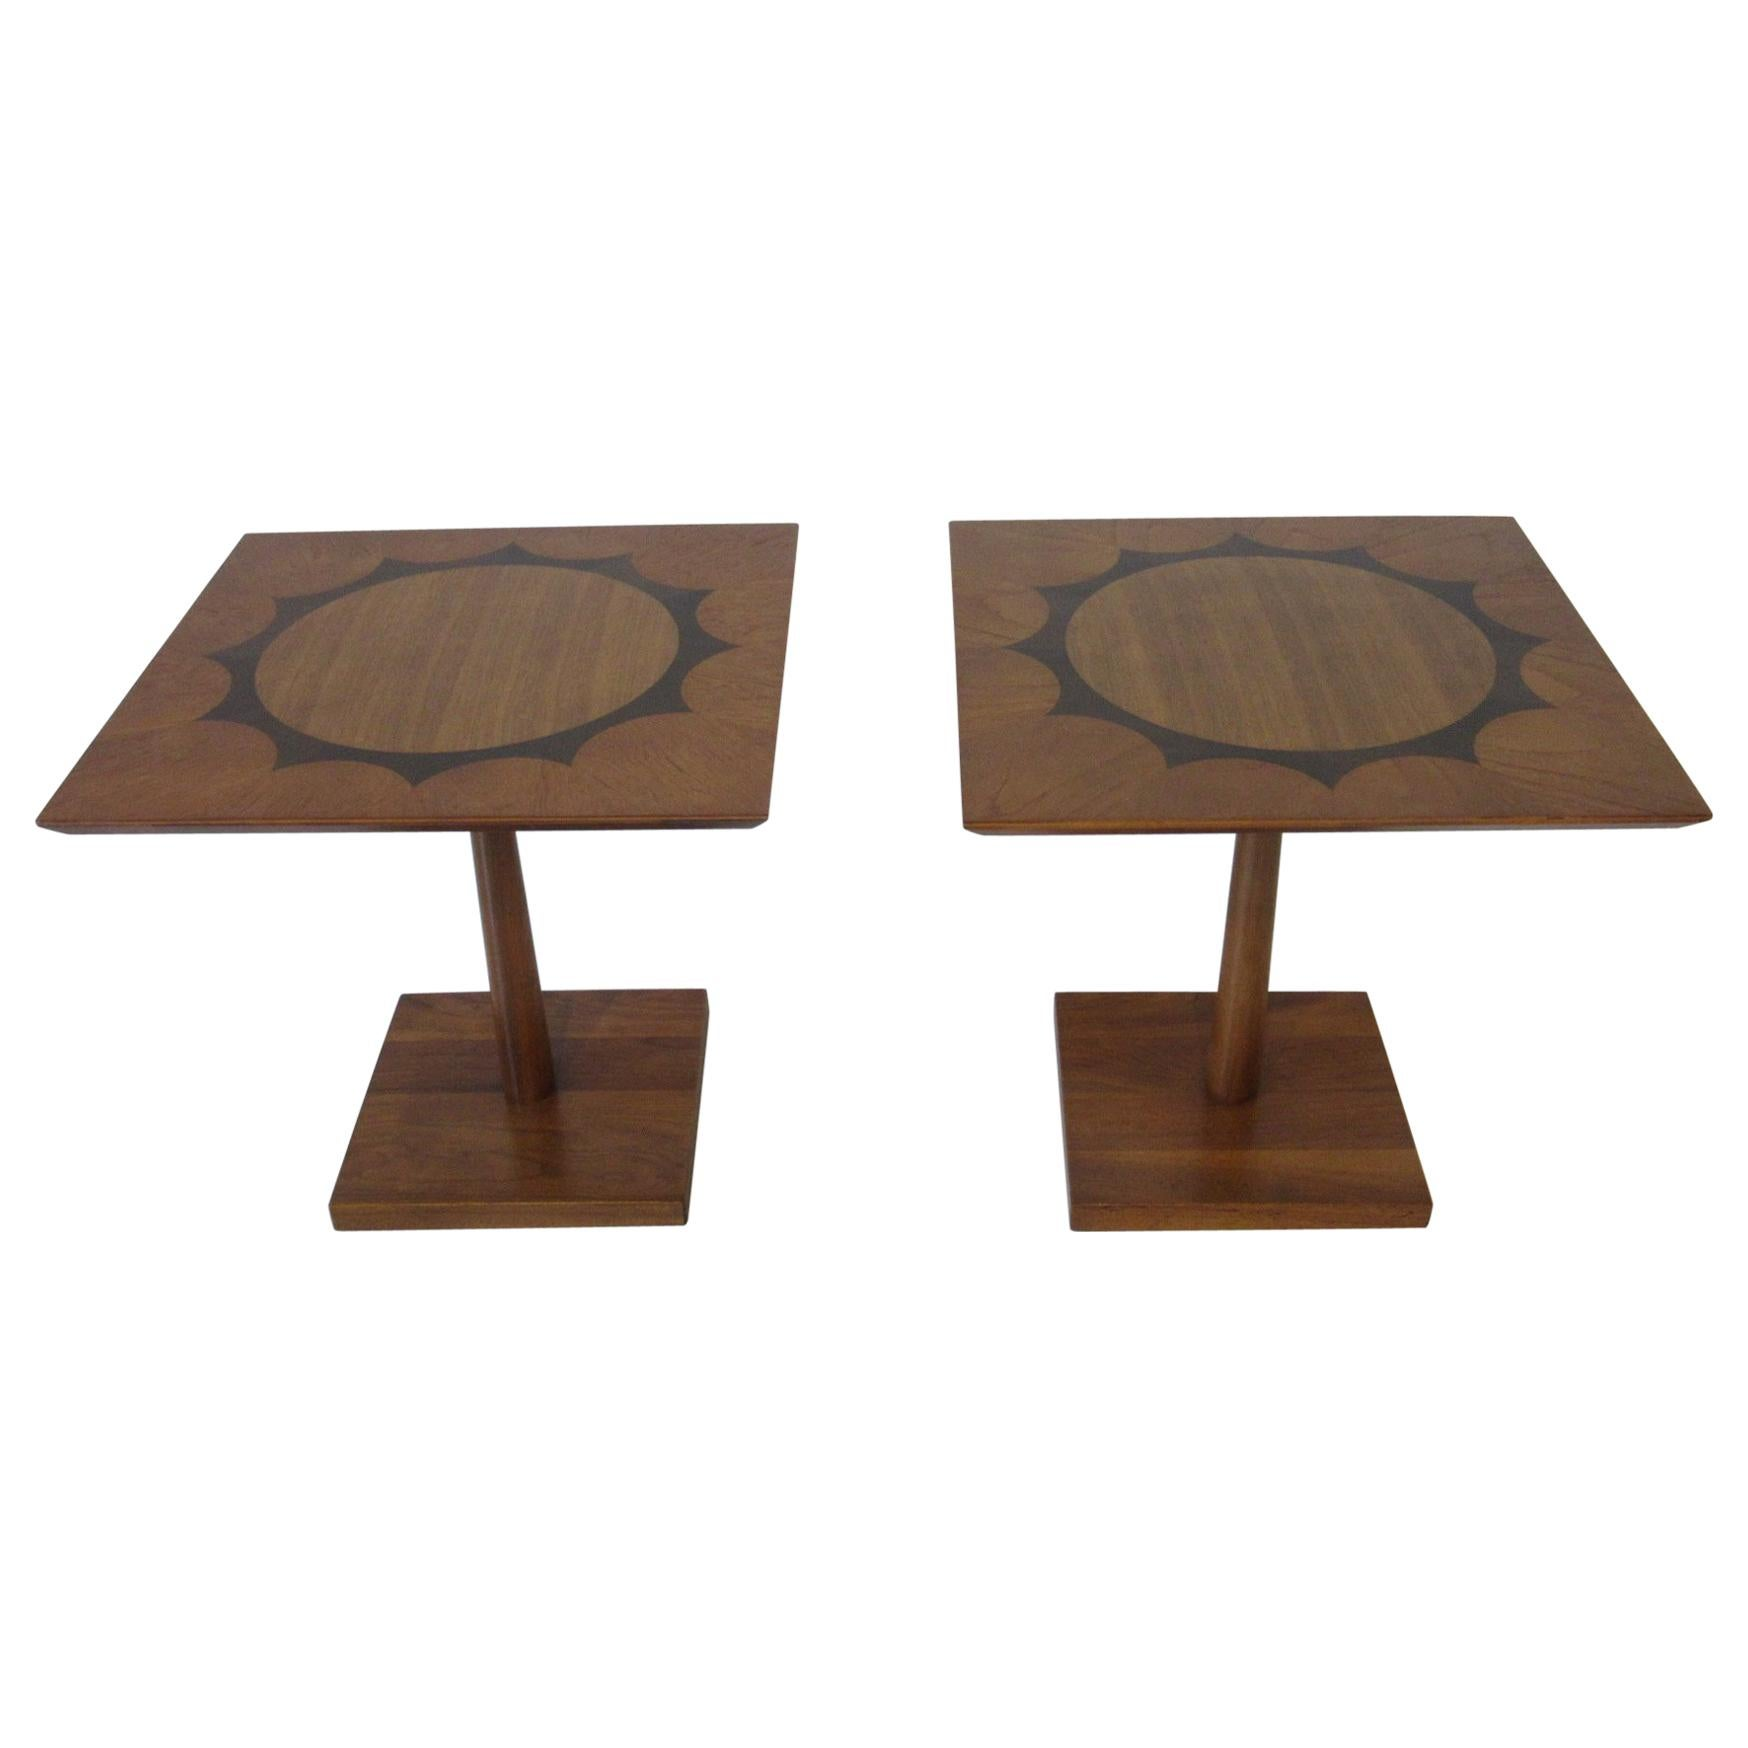 Midcentury Rosewood / Mahogany and Walnut Pedestal End Tables